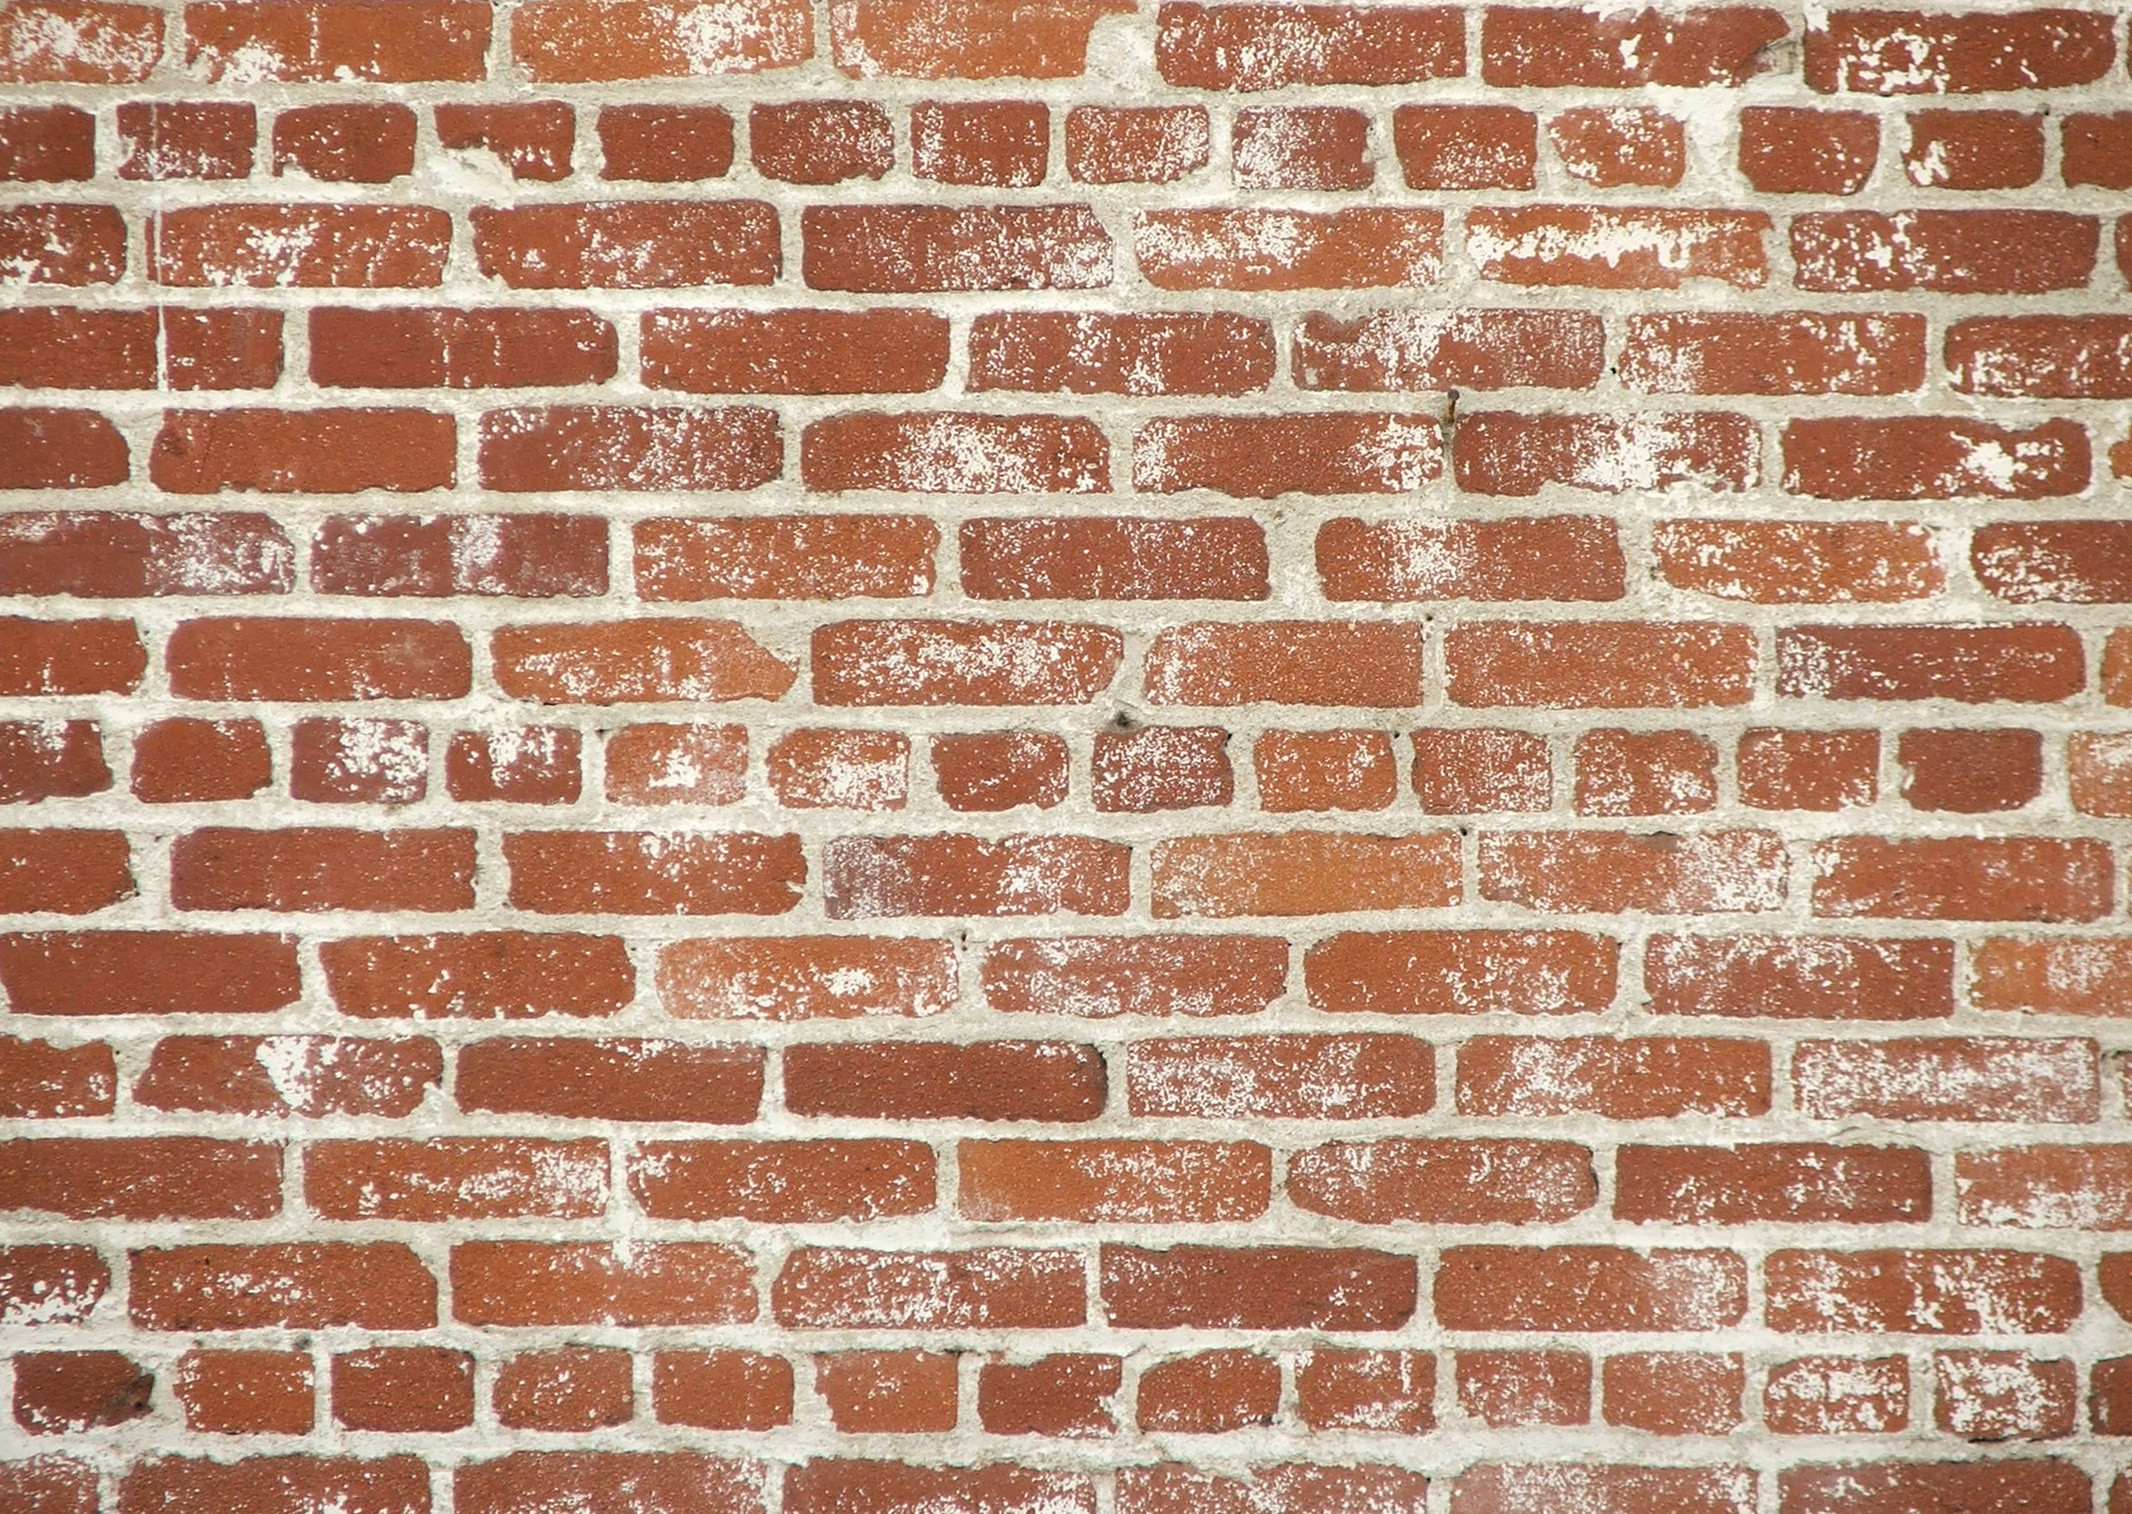 Stone Wall clipart brick wall background Brick Textured clipart download Texture